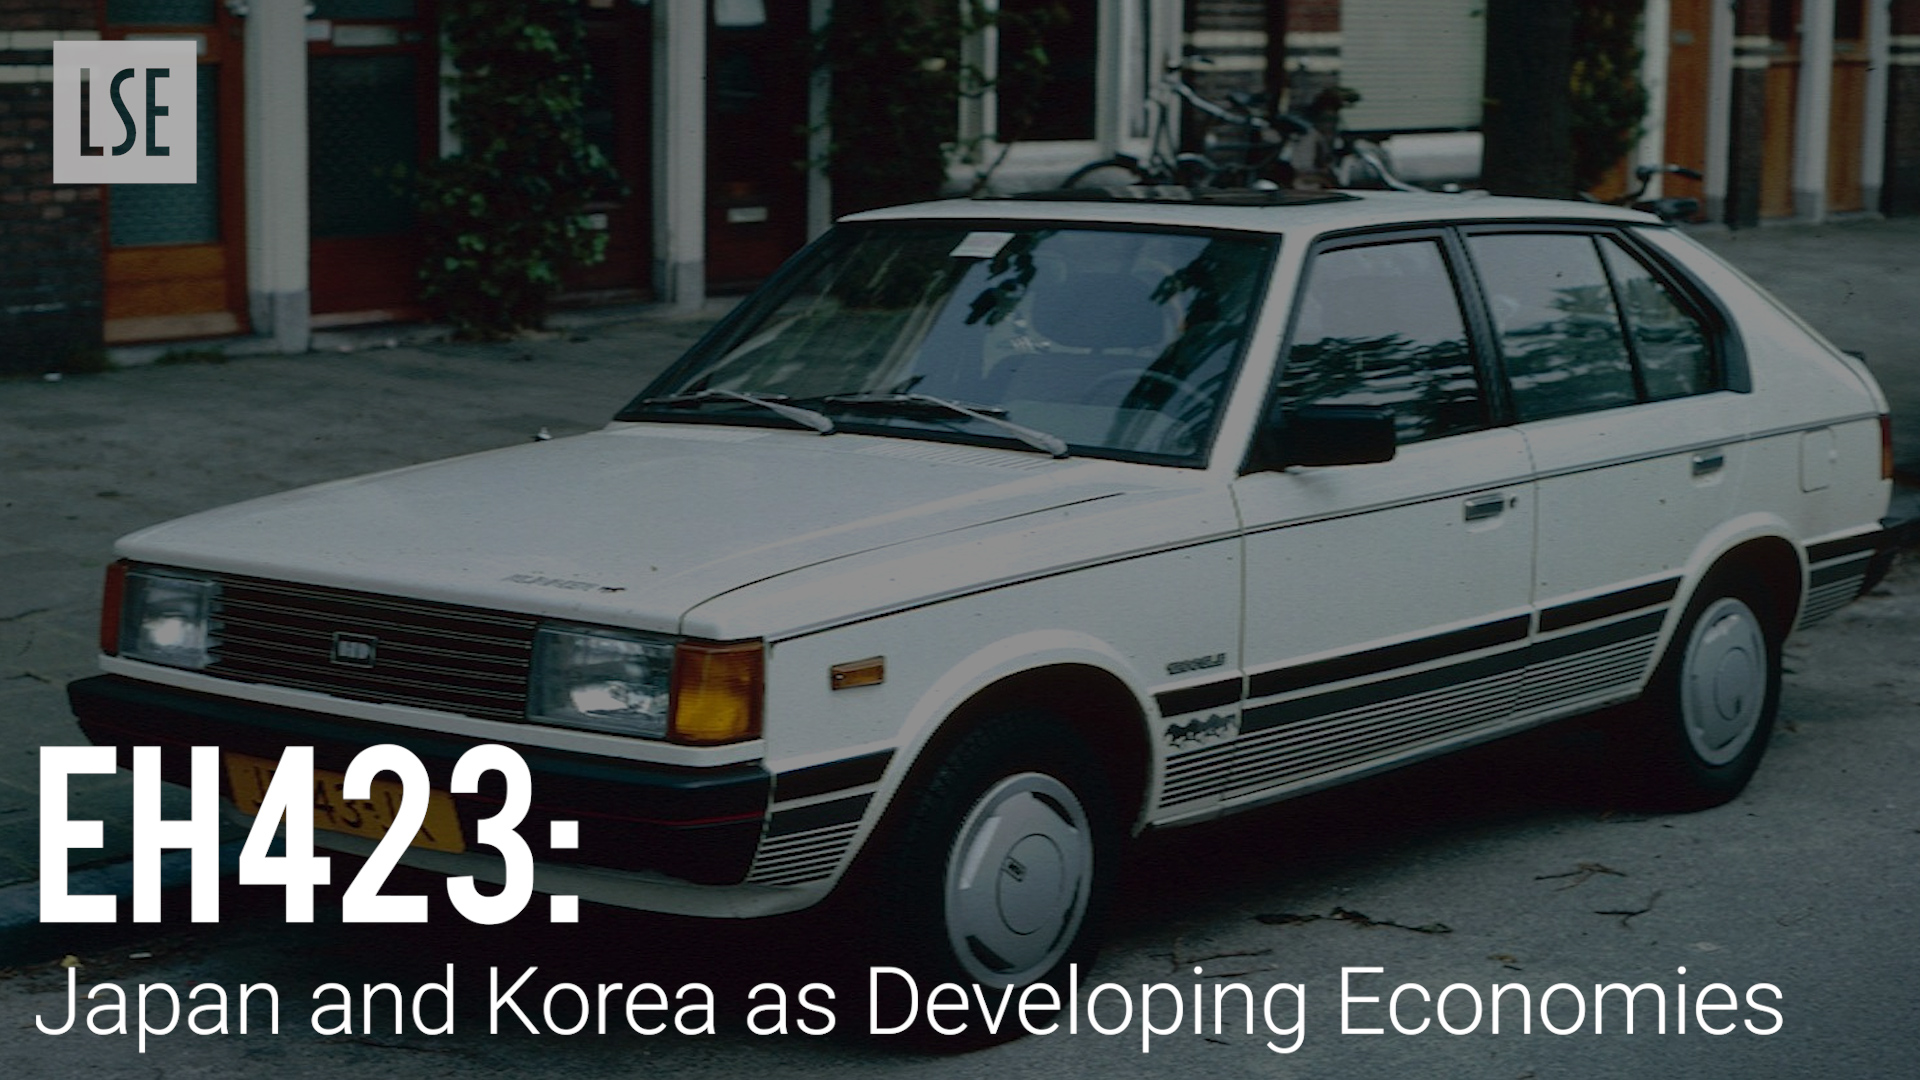 EH423 Japan and Korea as Developing Economies